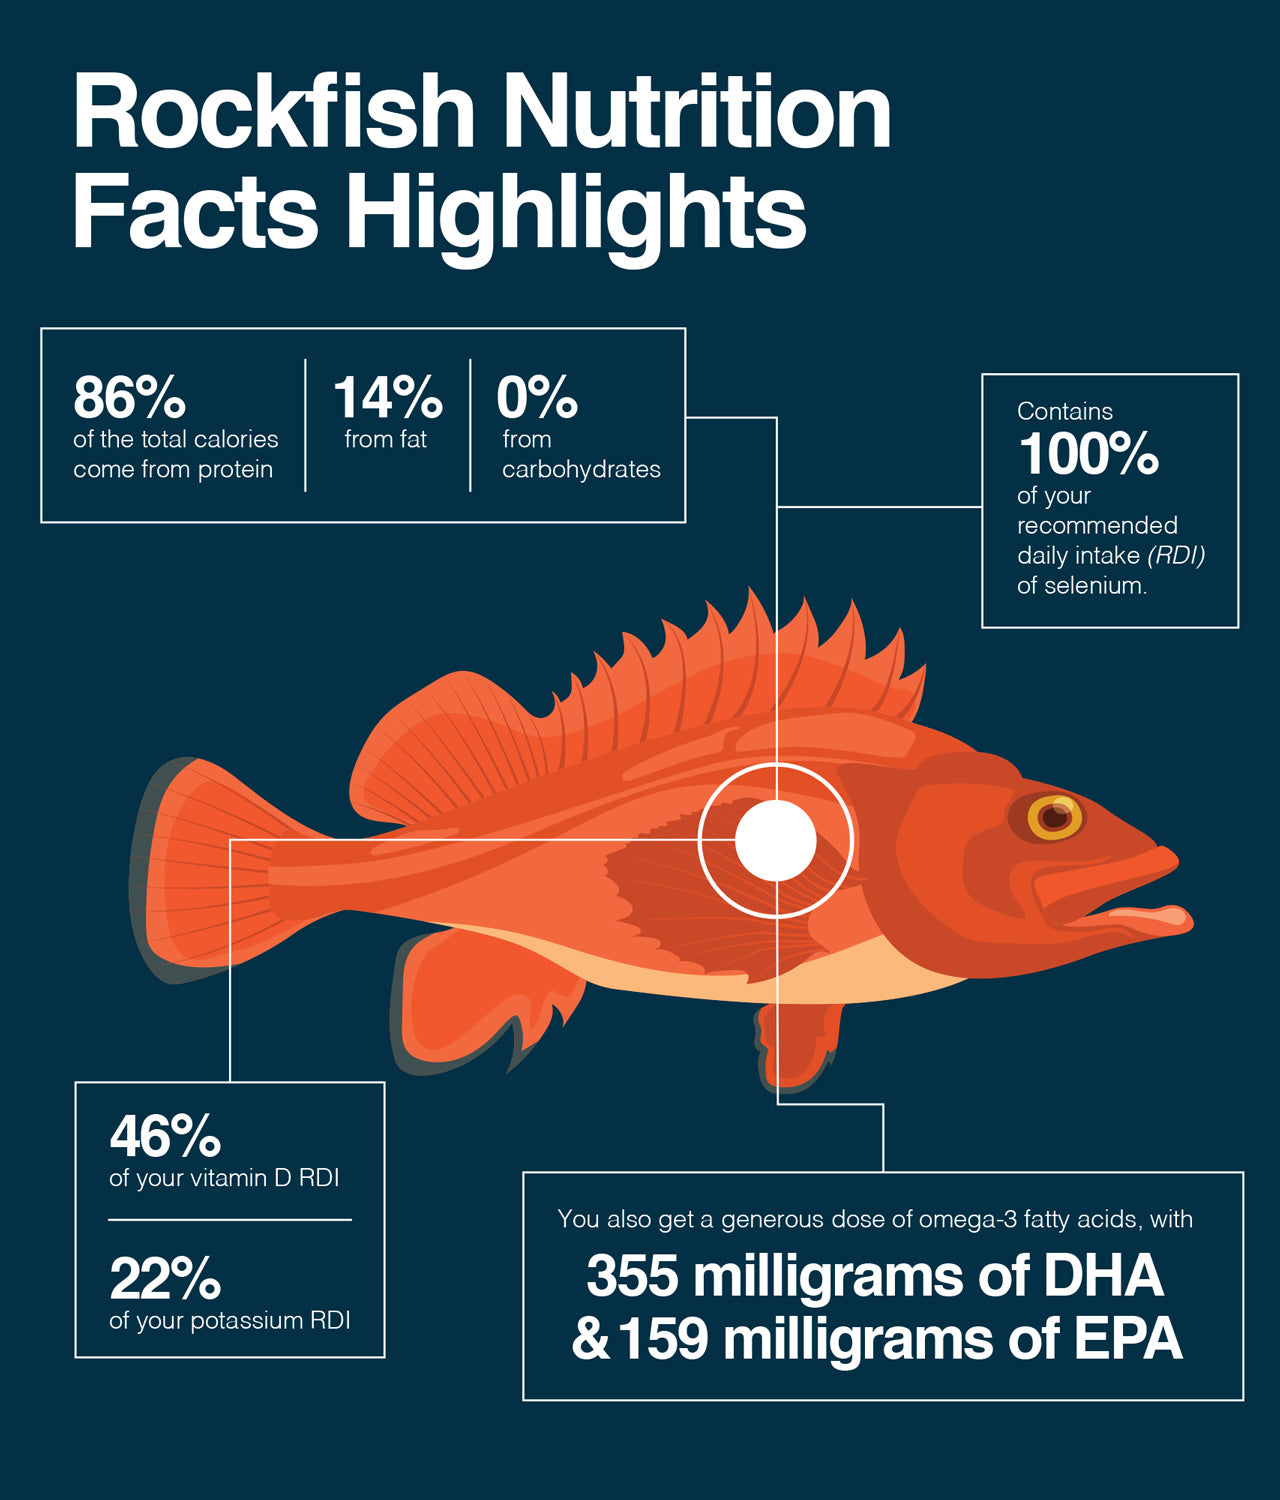 Here are the nutritional highlights on rockfish.